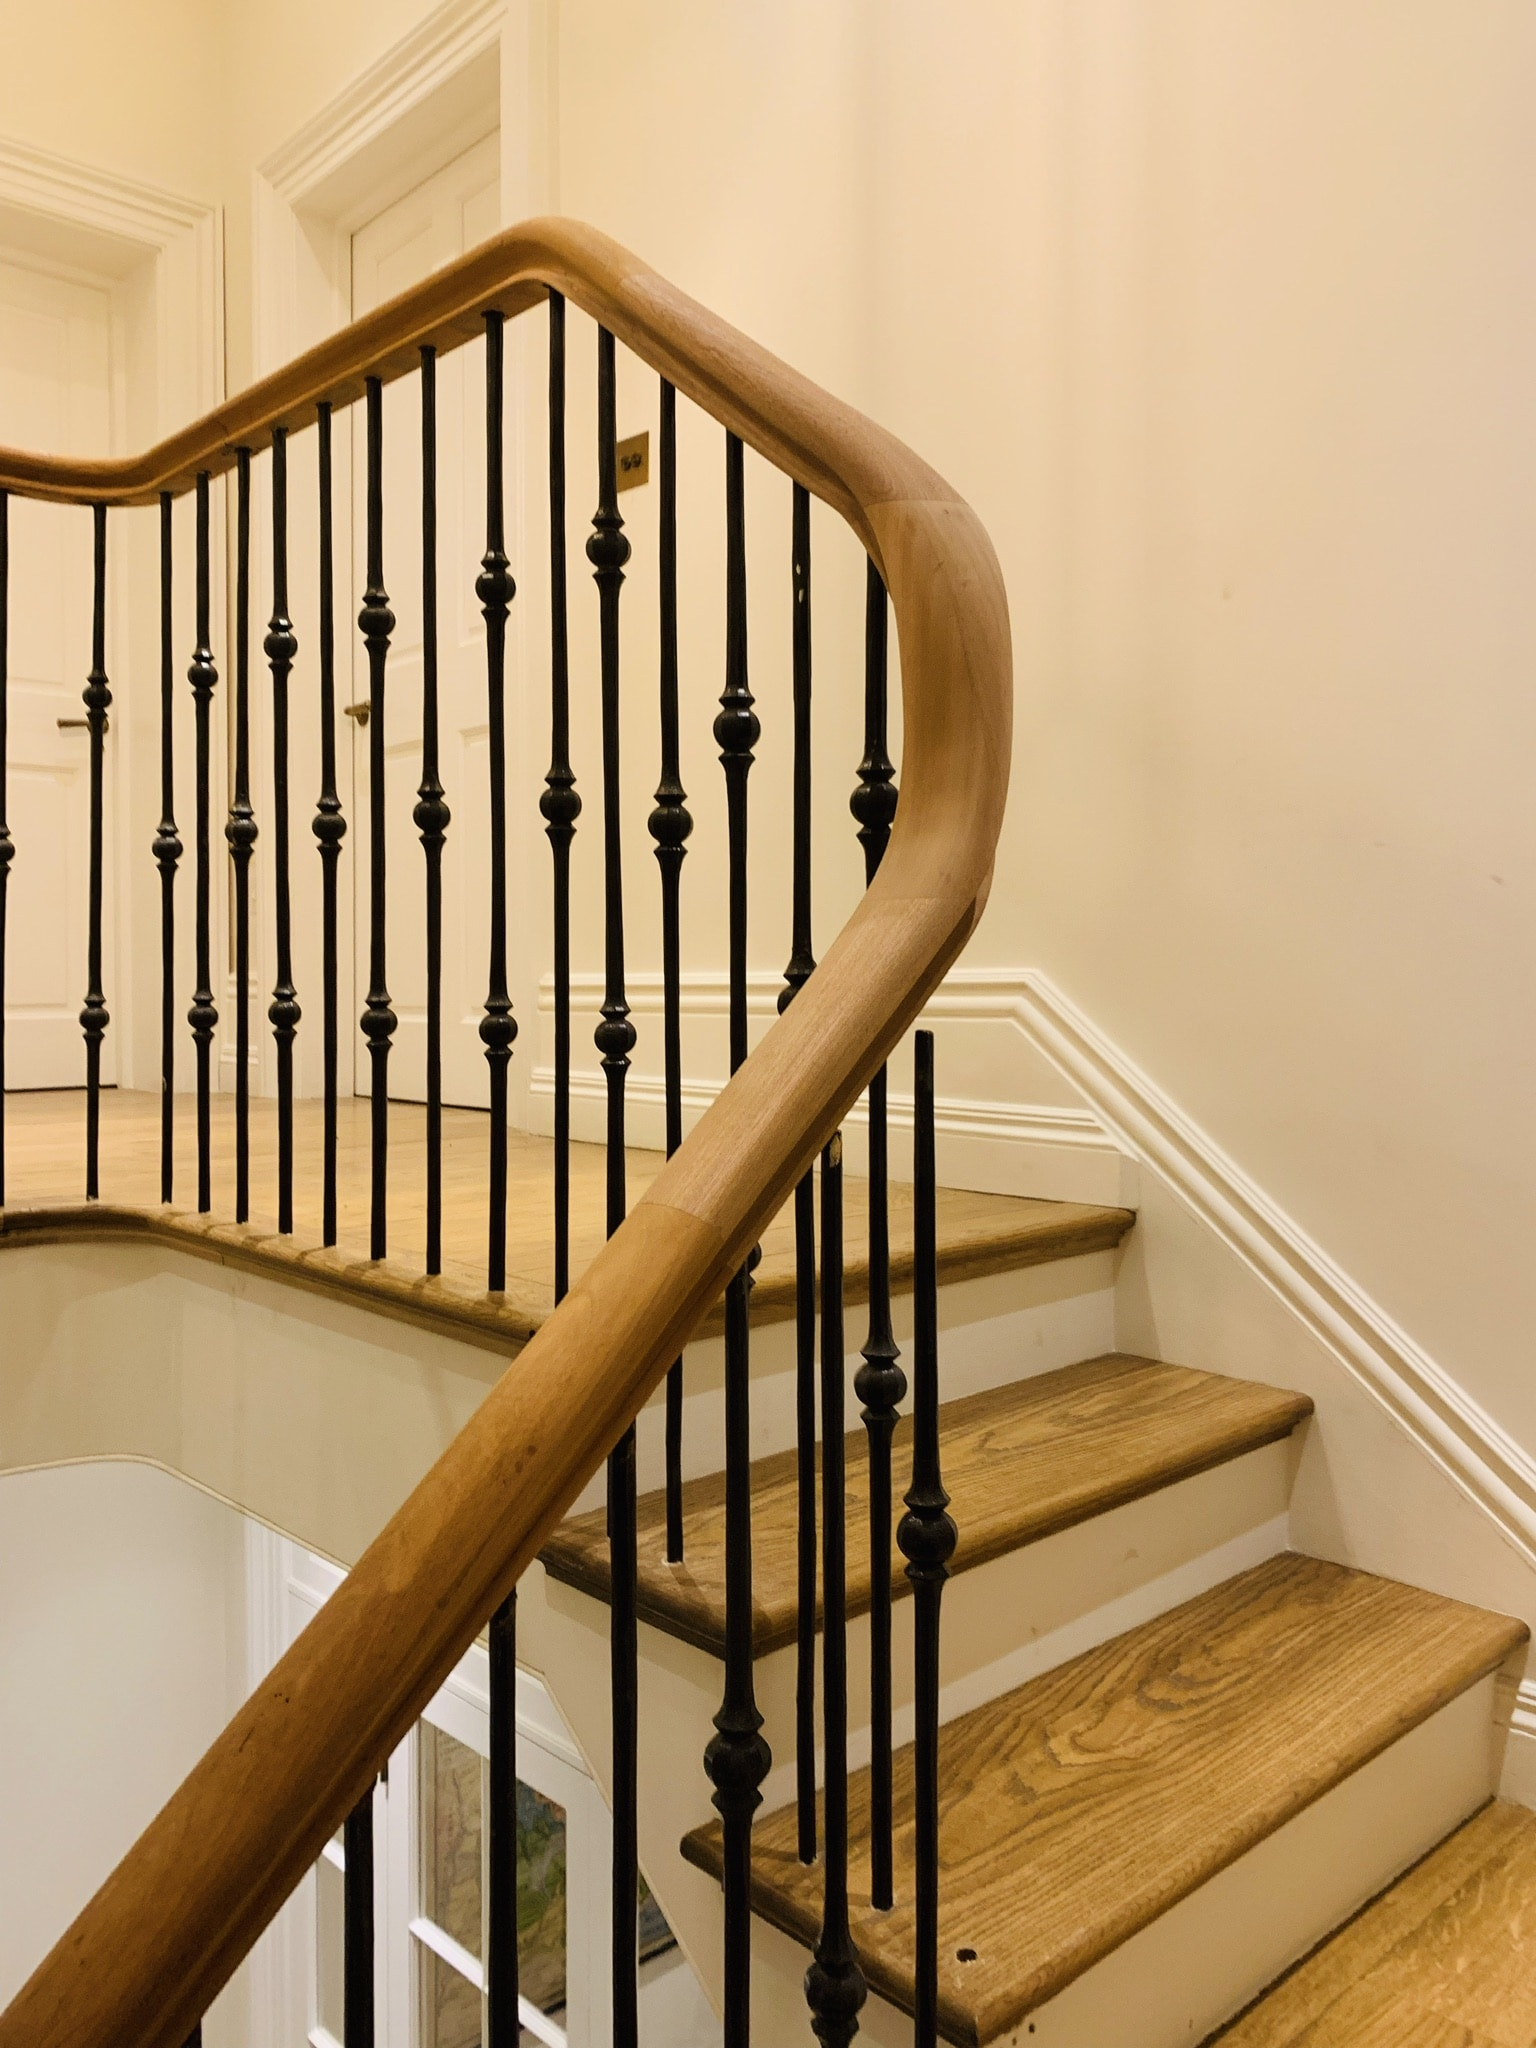 Special design of curved handrail. Hardwood.